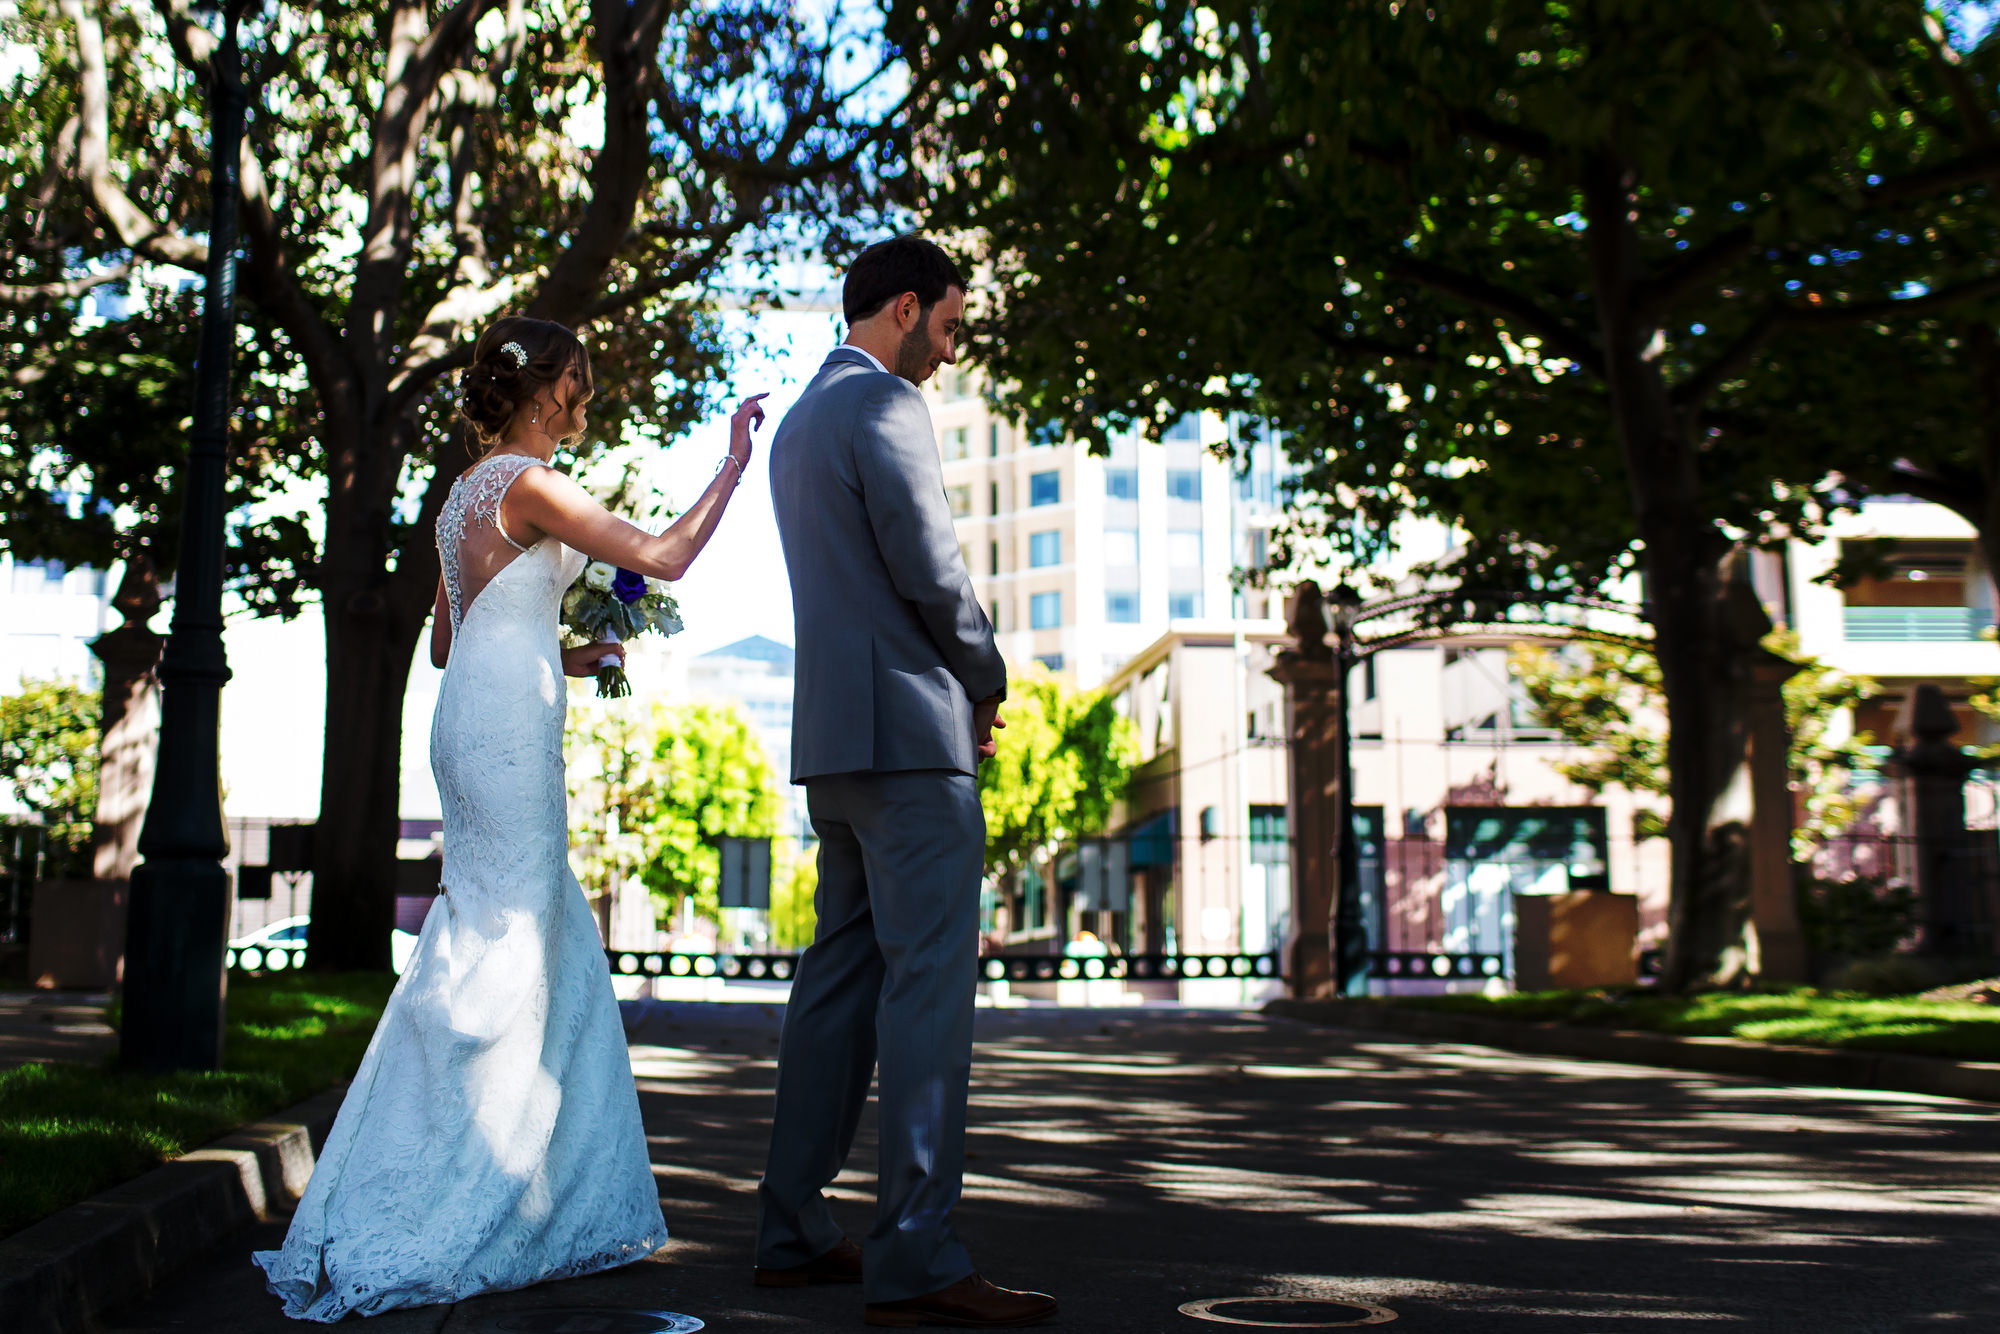 Outdoor wedding in Preservation Park in Oakland, California by destination wedding photographers, Daniel and Lindsay Stark of Stark Photography. (29)